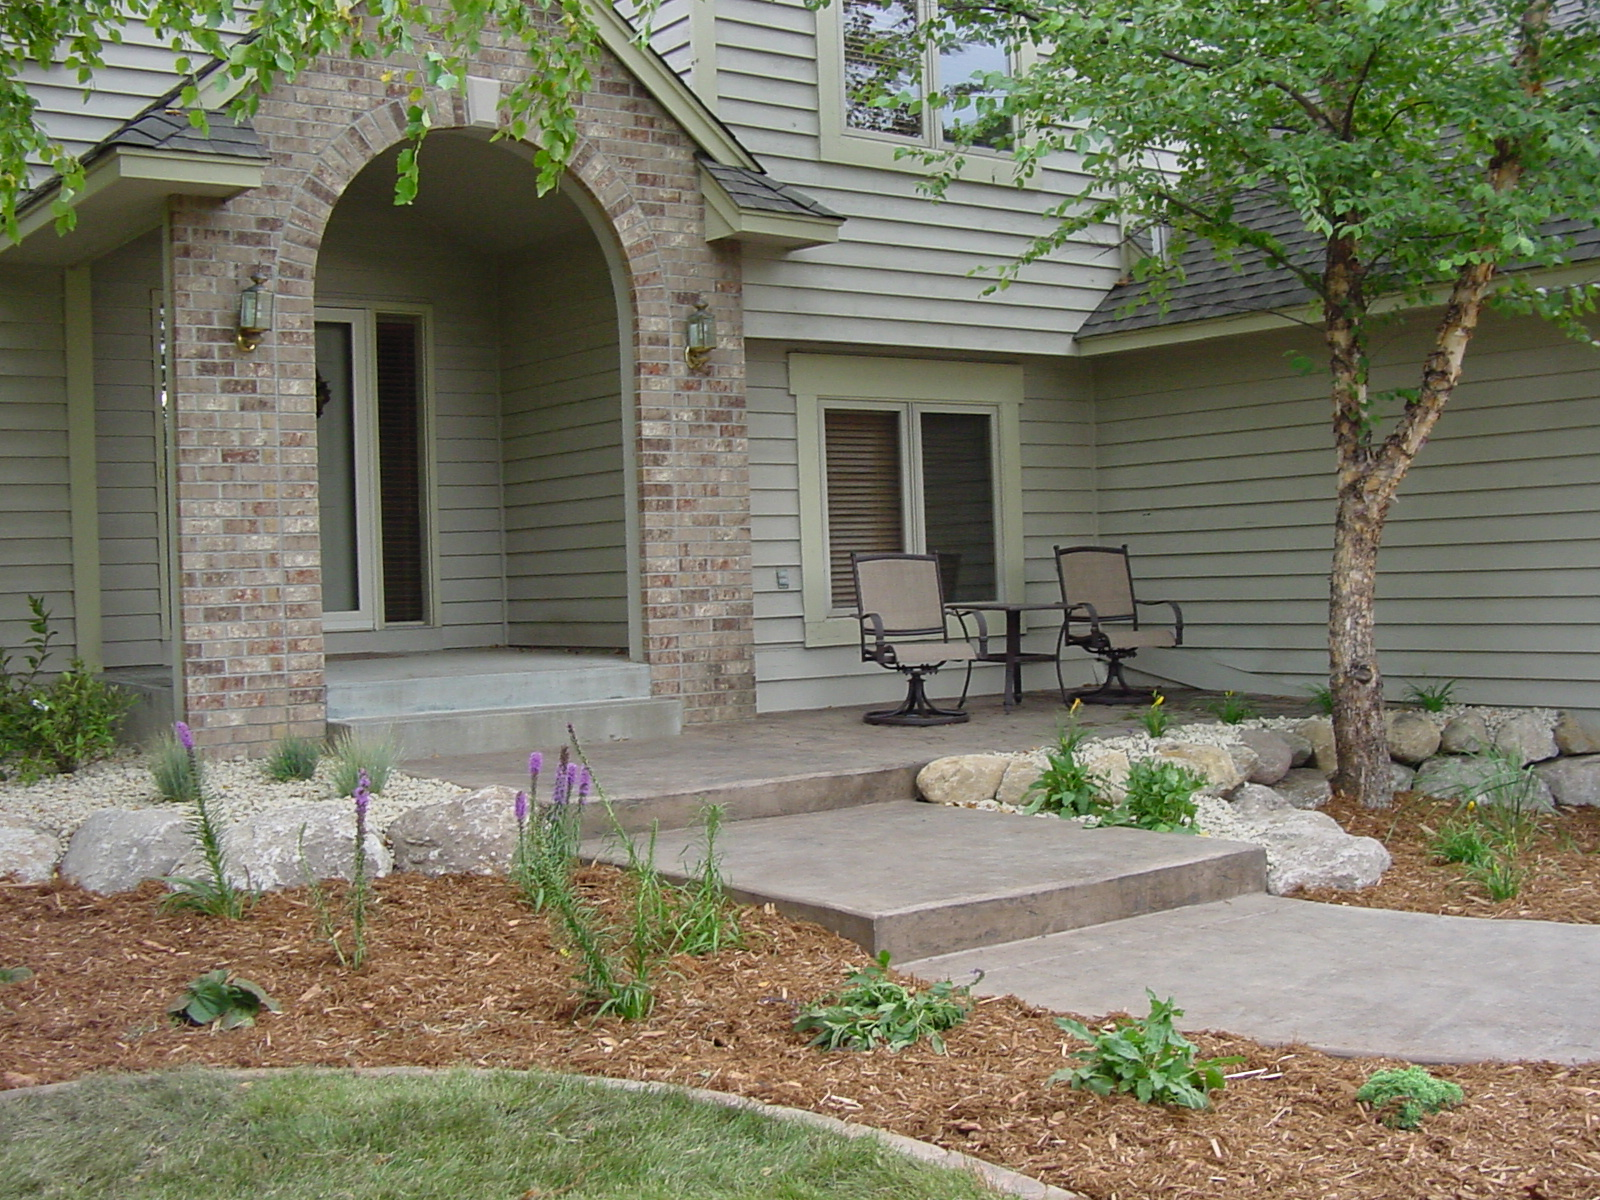 Residential landscape design ideas and photos, Shakopee ...